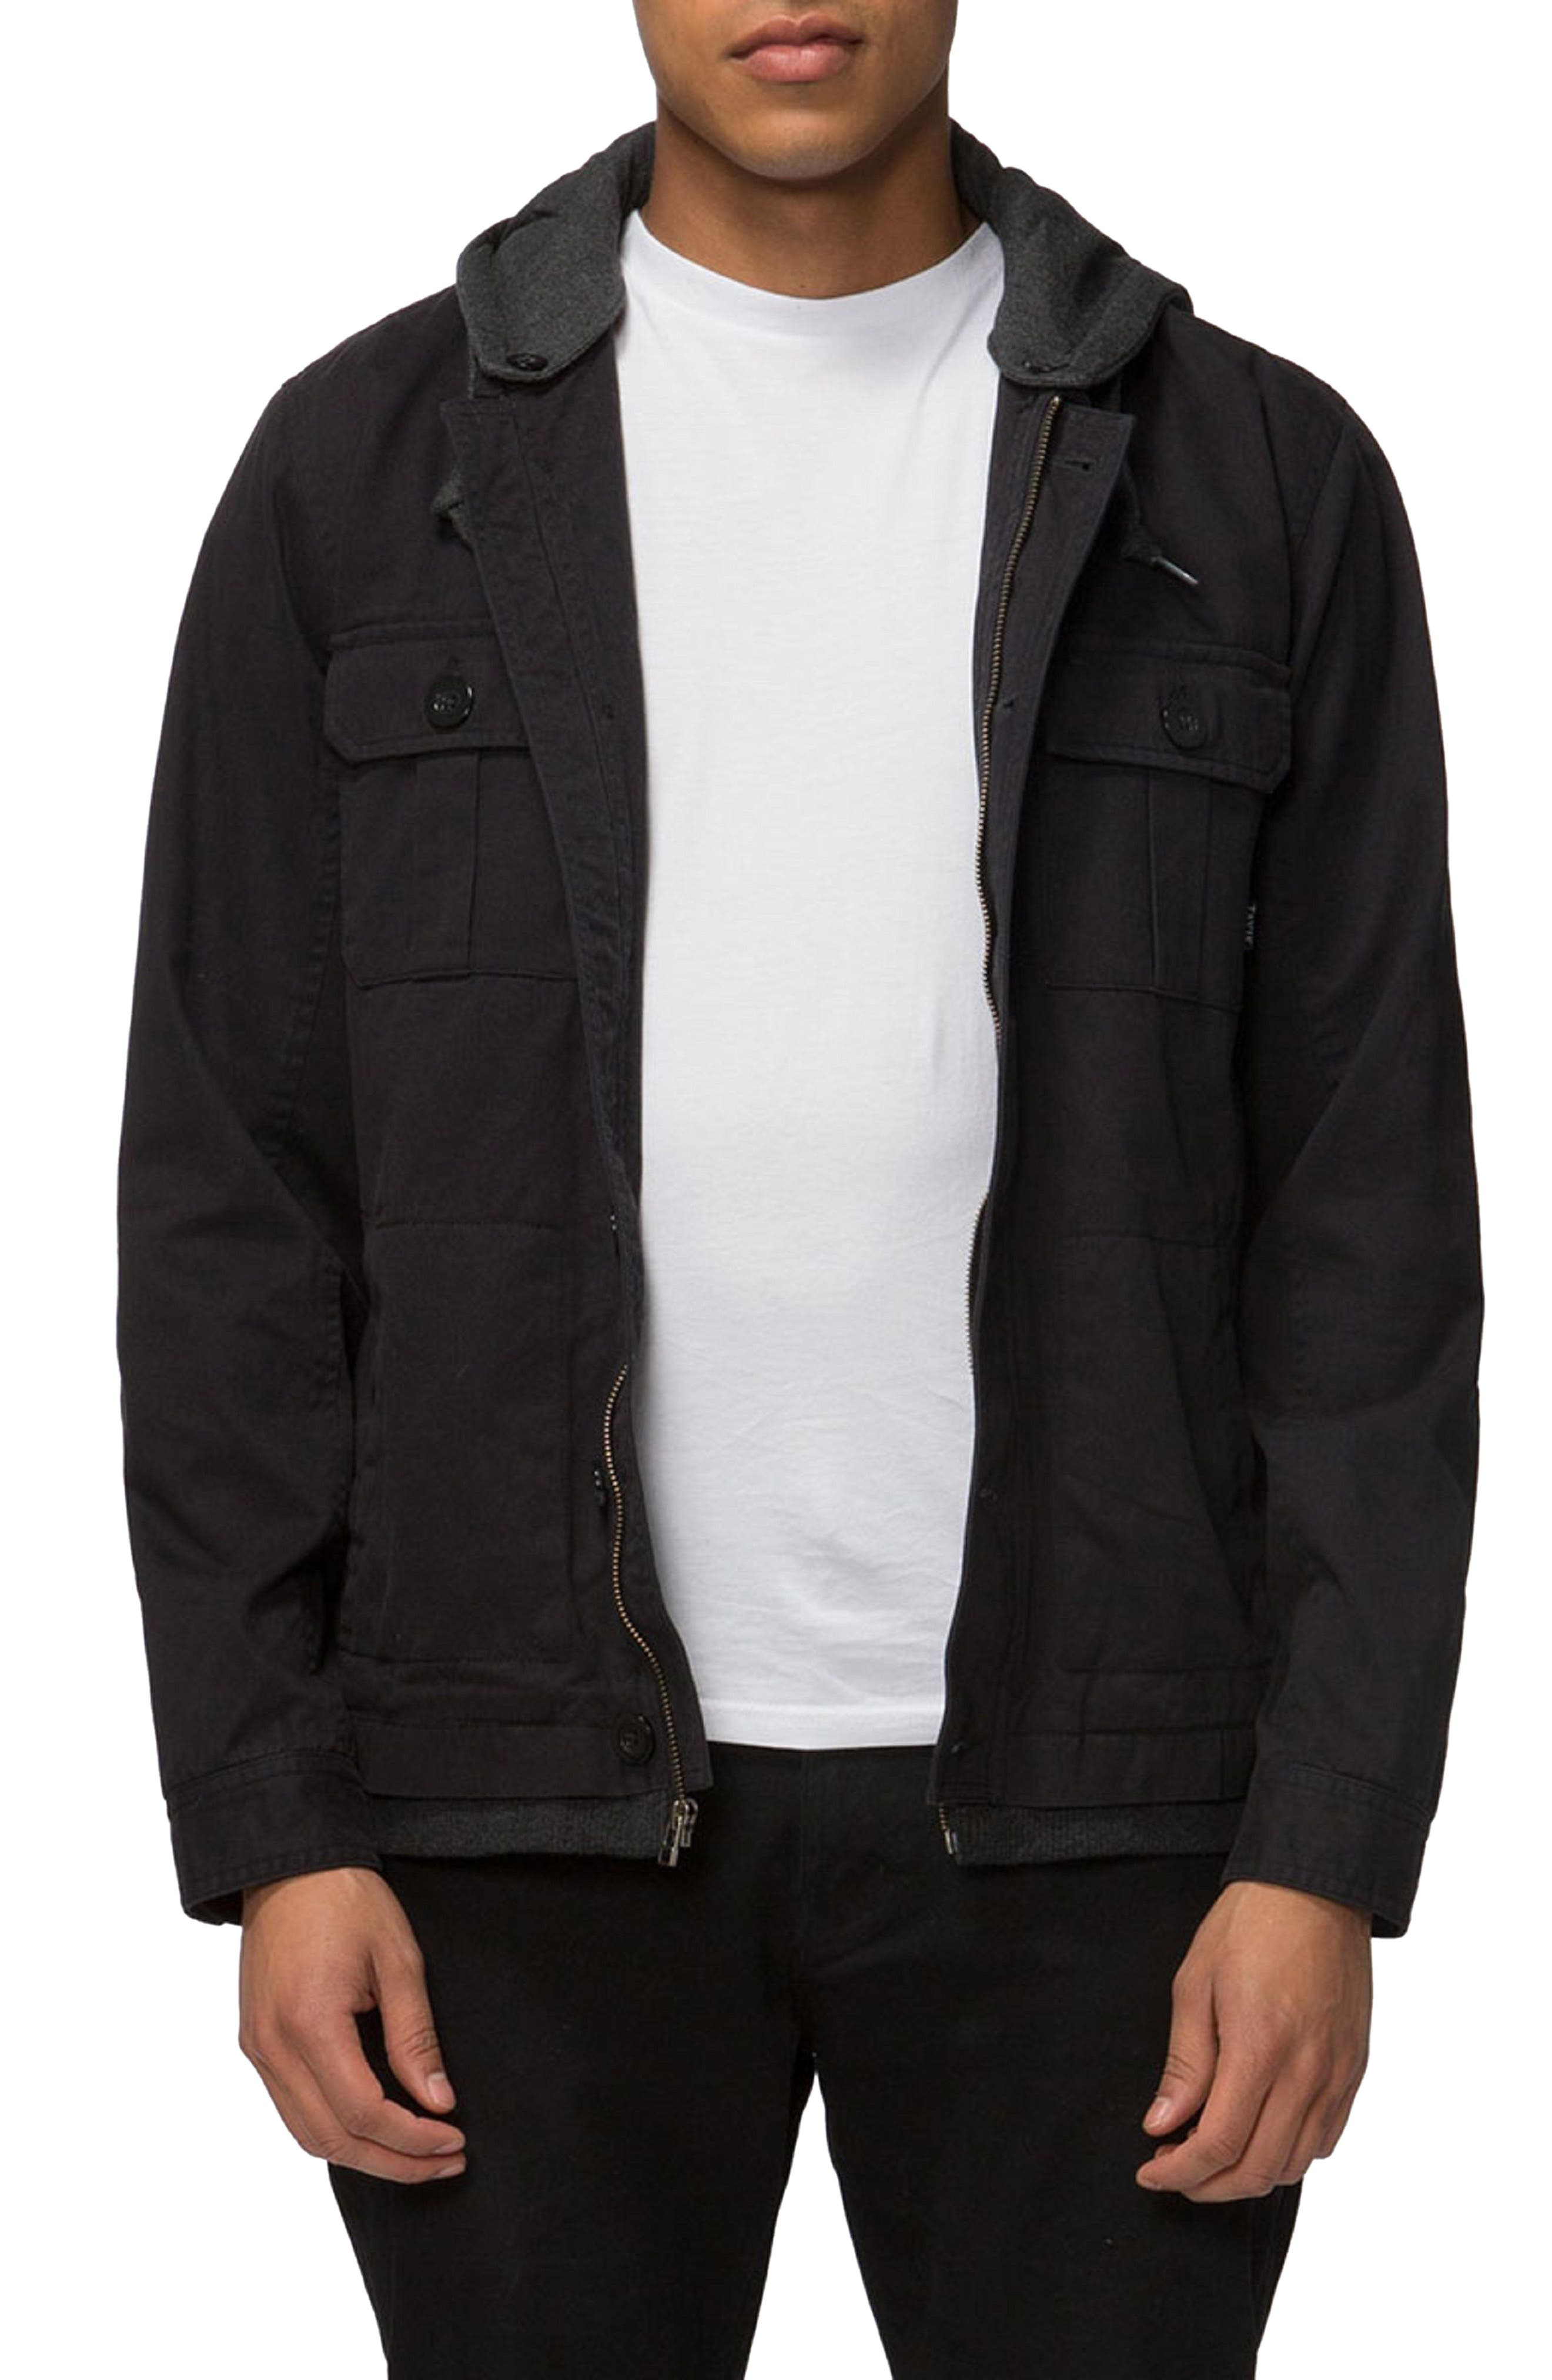 Droogs Field Jacket with Detachable Hood,                         Main,                         color, Black/ Heather Black